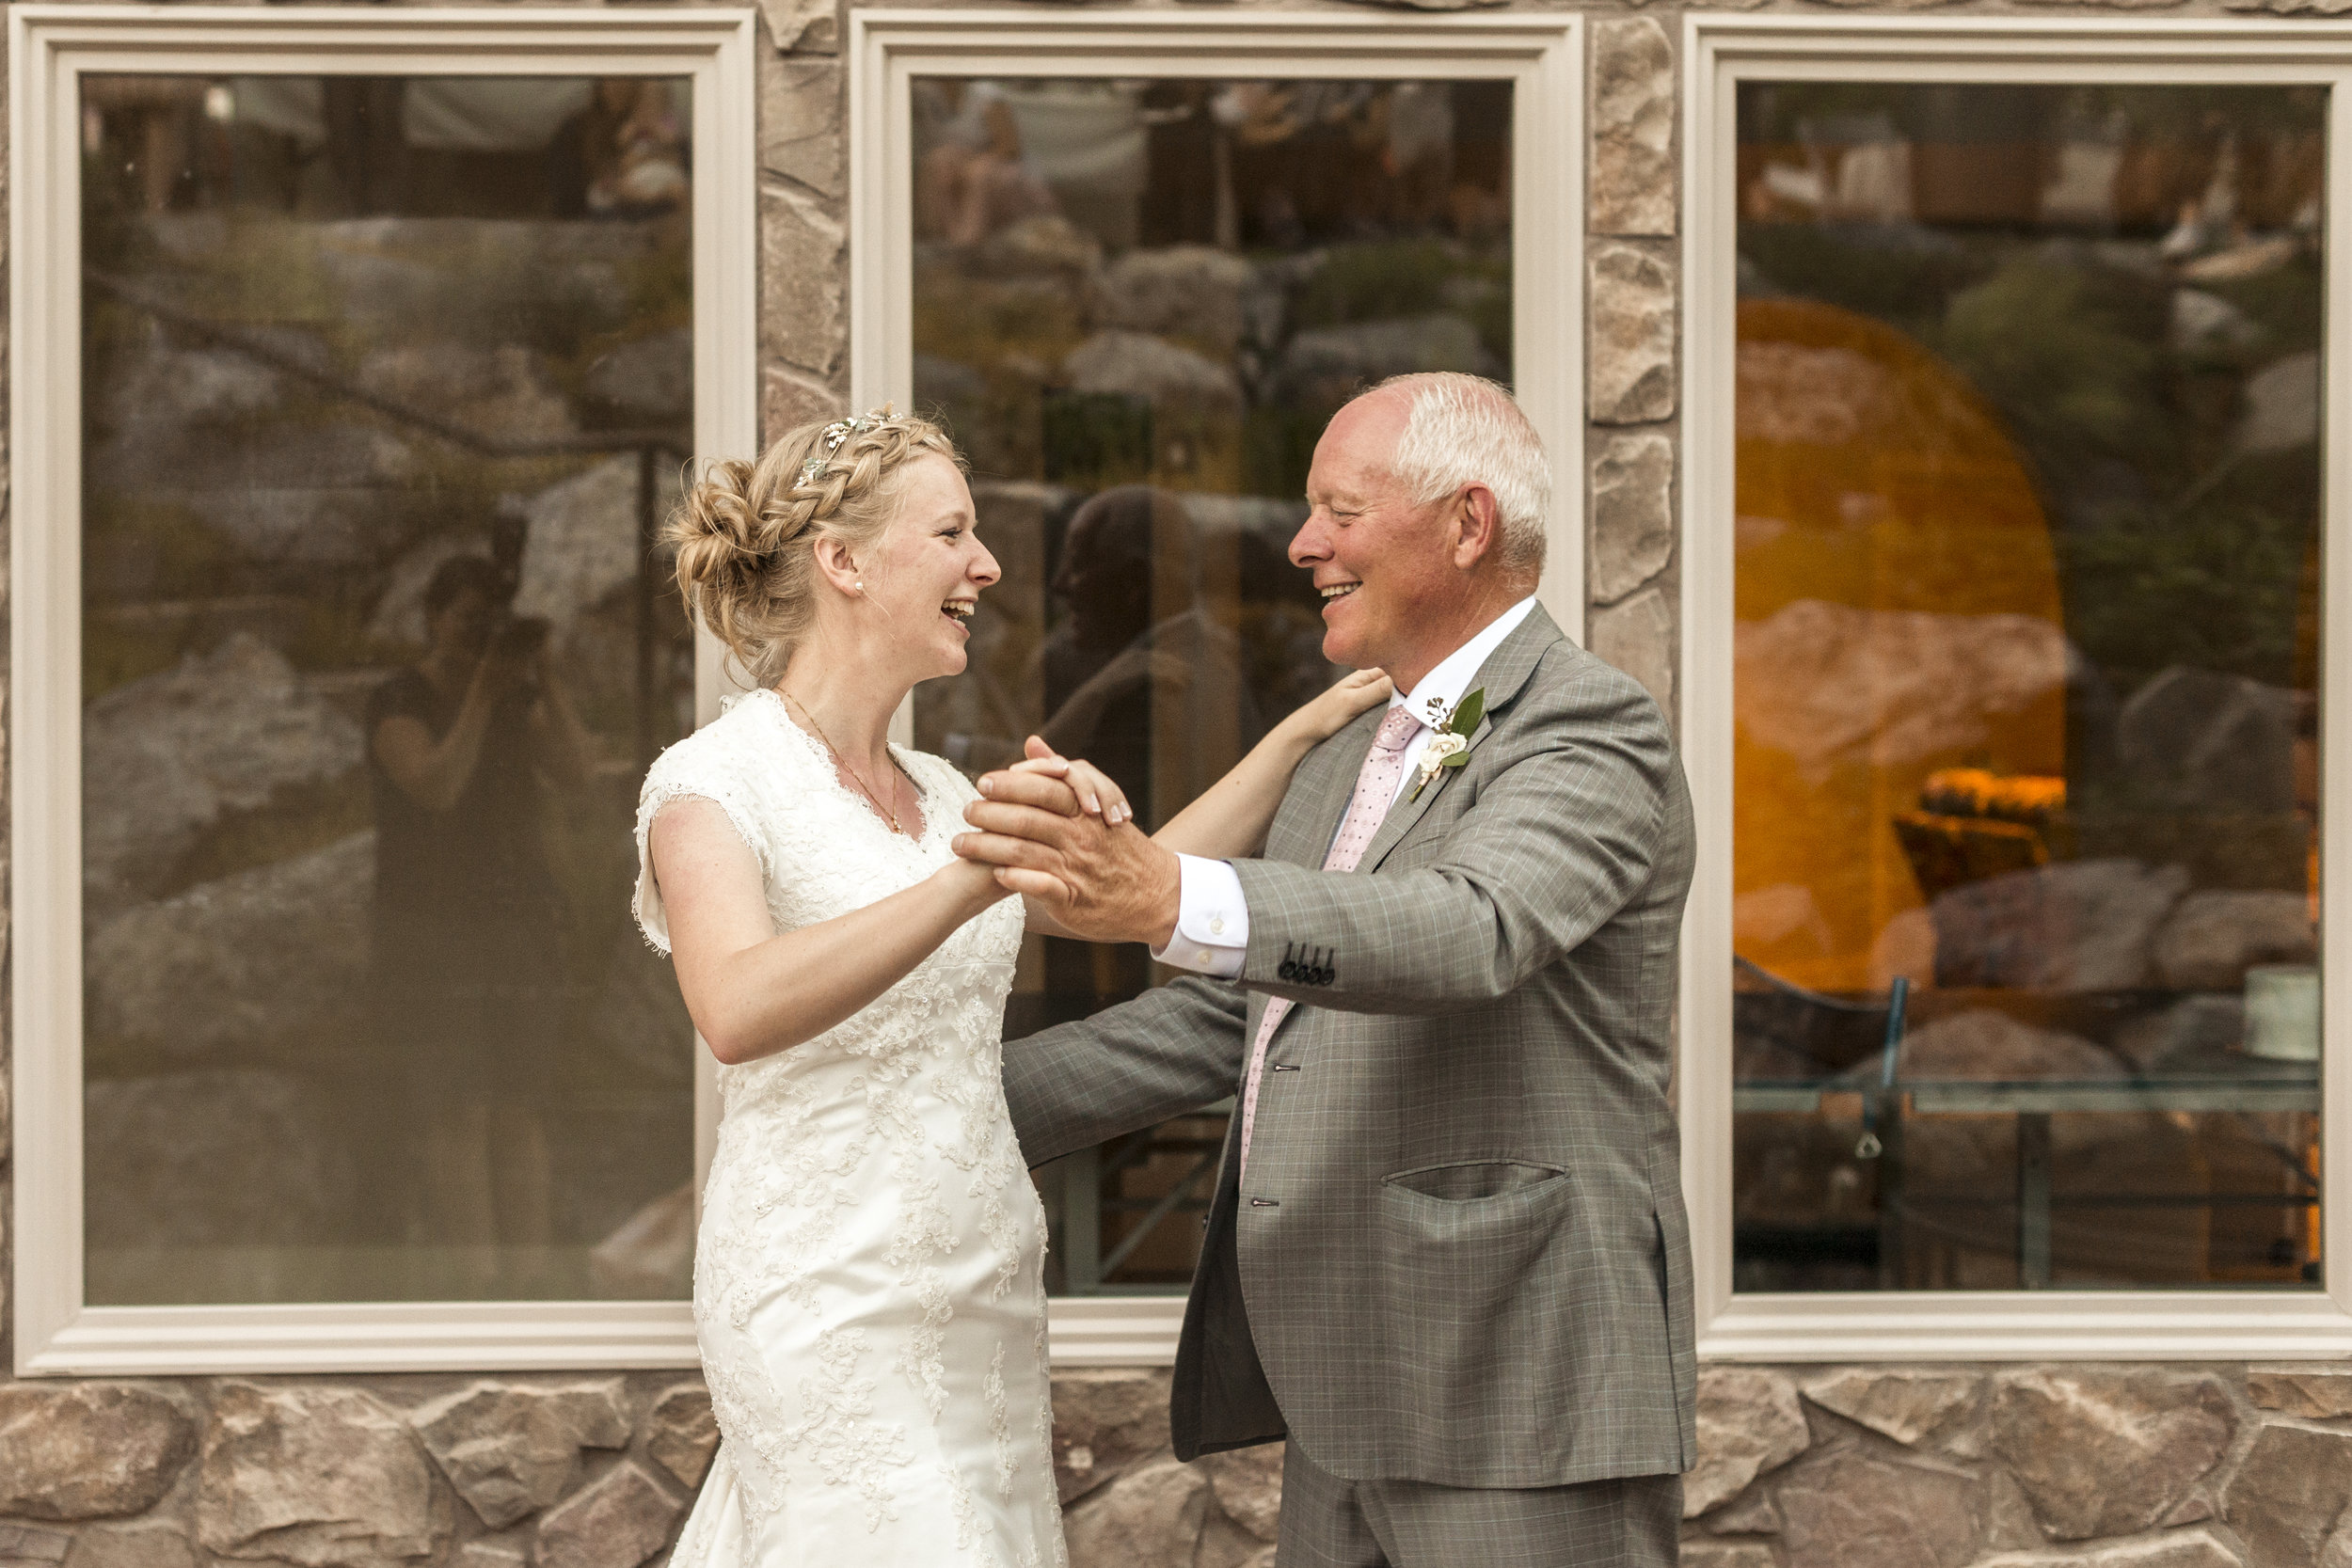 LDS Summer Wedding | South Jordan, Utah Wedding Photographer| Bri Bergman Photography 30.JPG